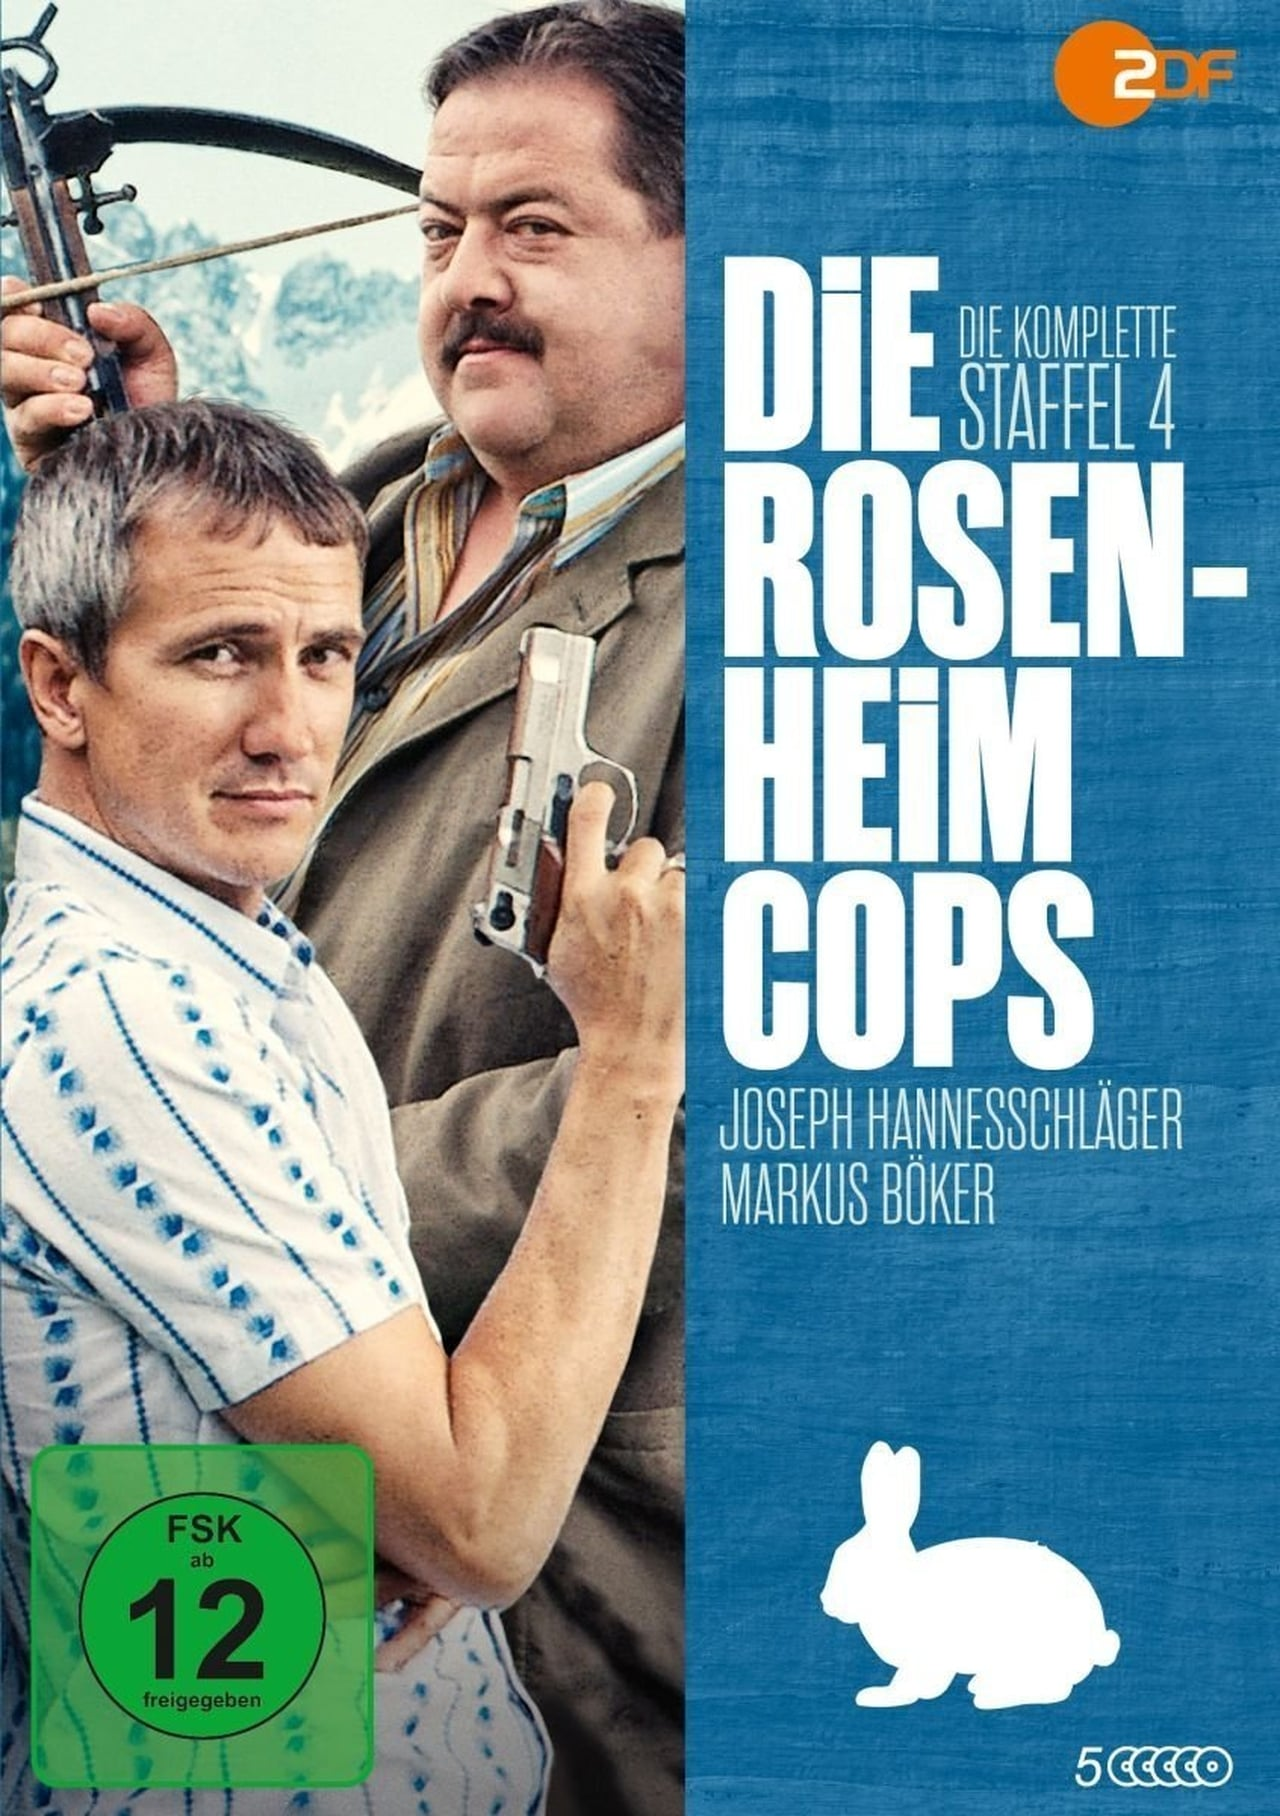 The Rosenheim Cops Season 4 (2005) putlockers cafe